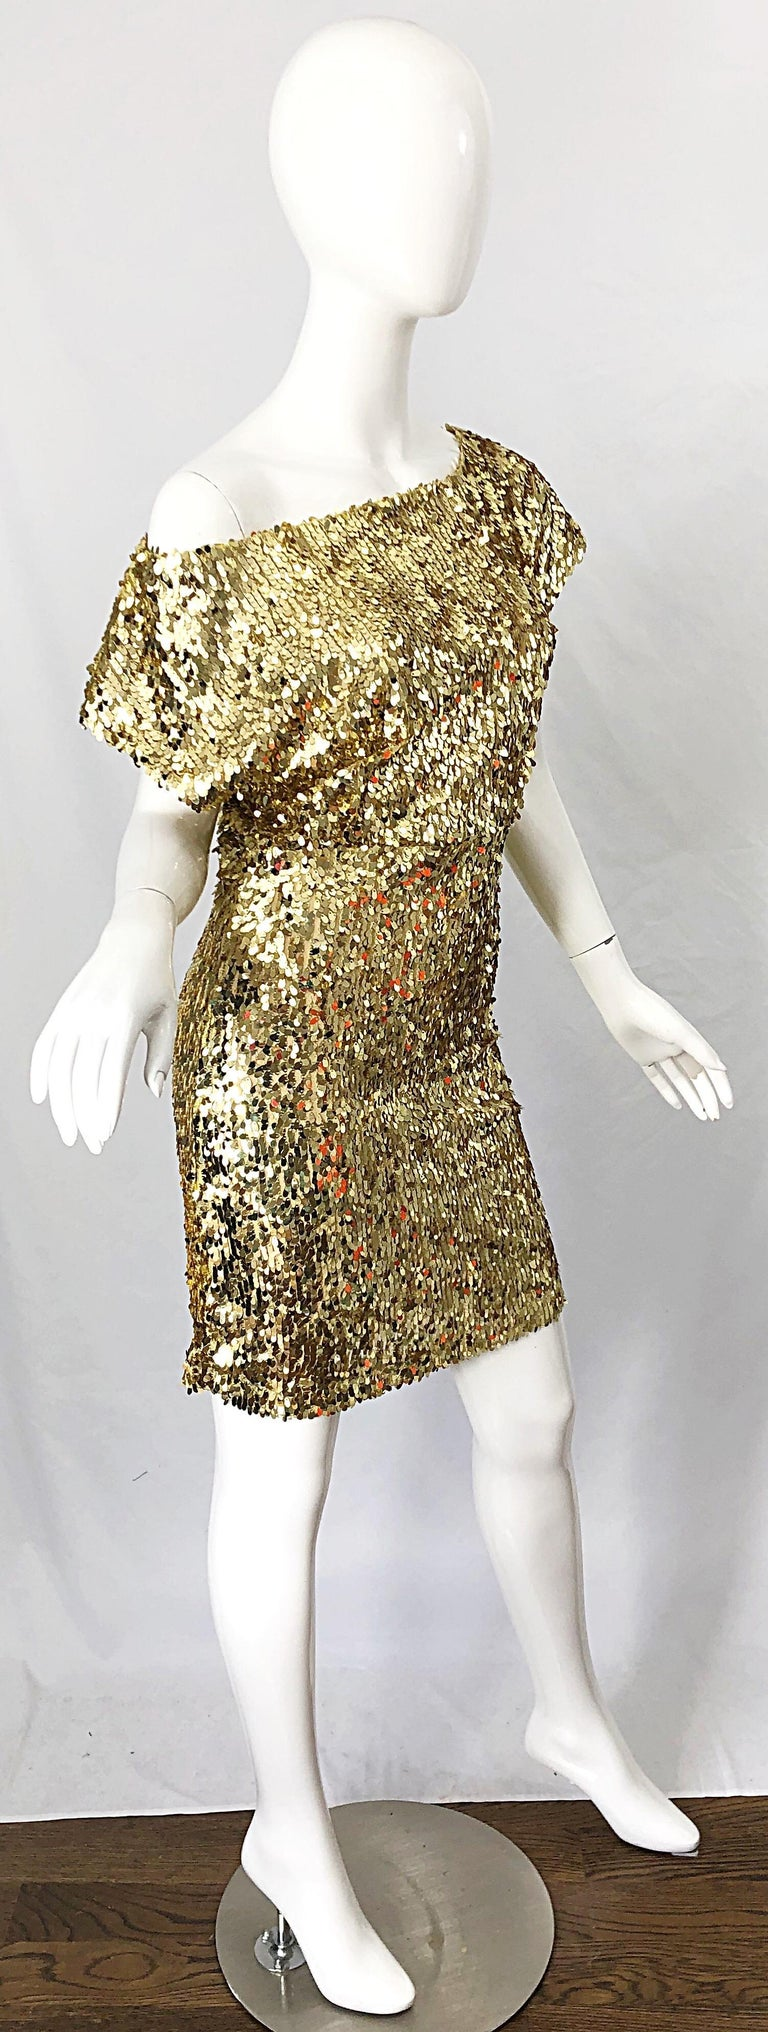 1990s Italian Gold Sequined Off the Shoulder Sexy Vintage 90s Dress For Sale 8